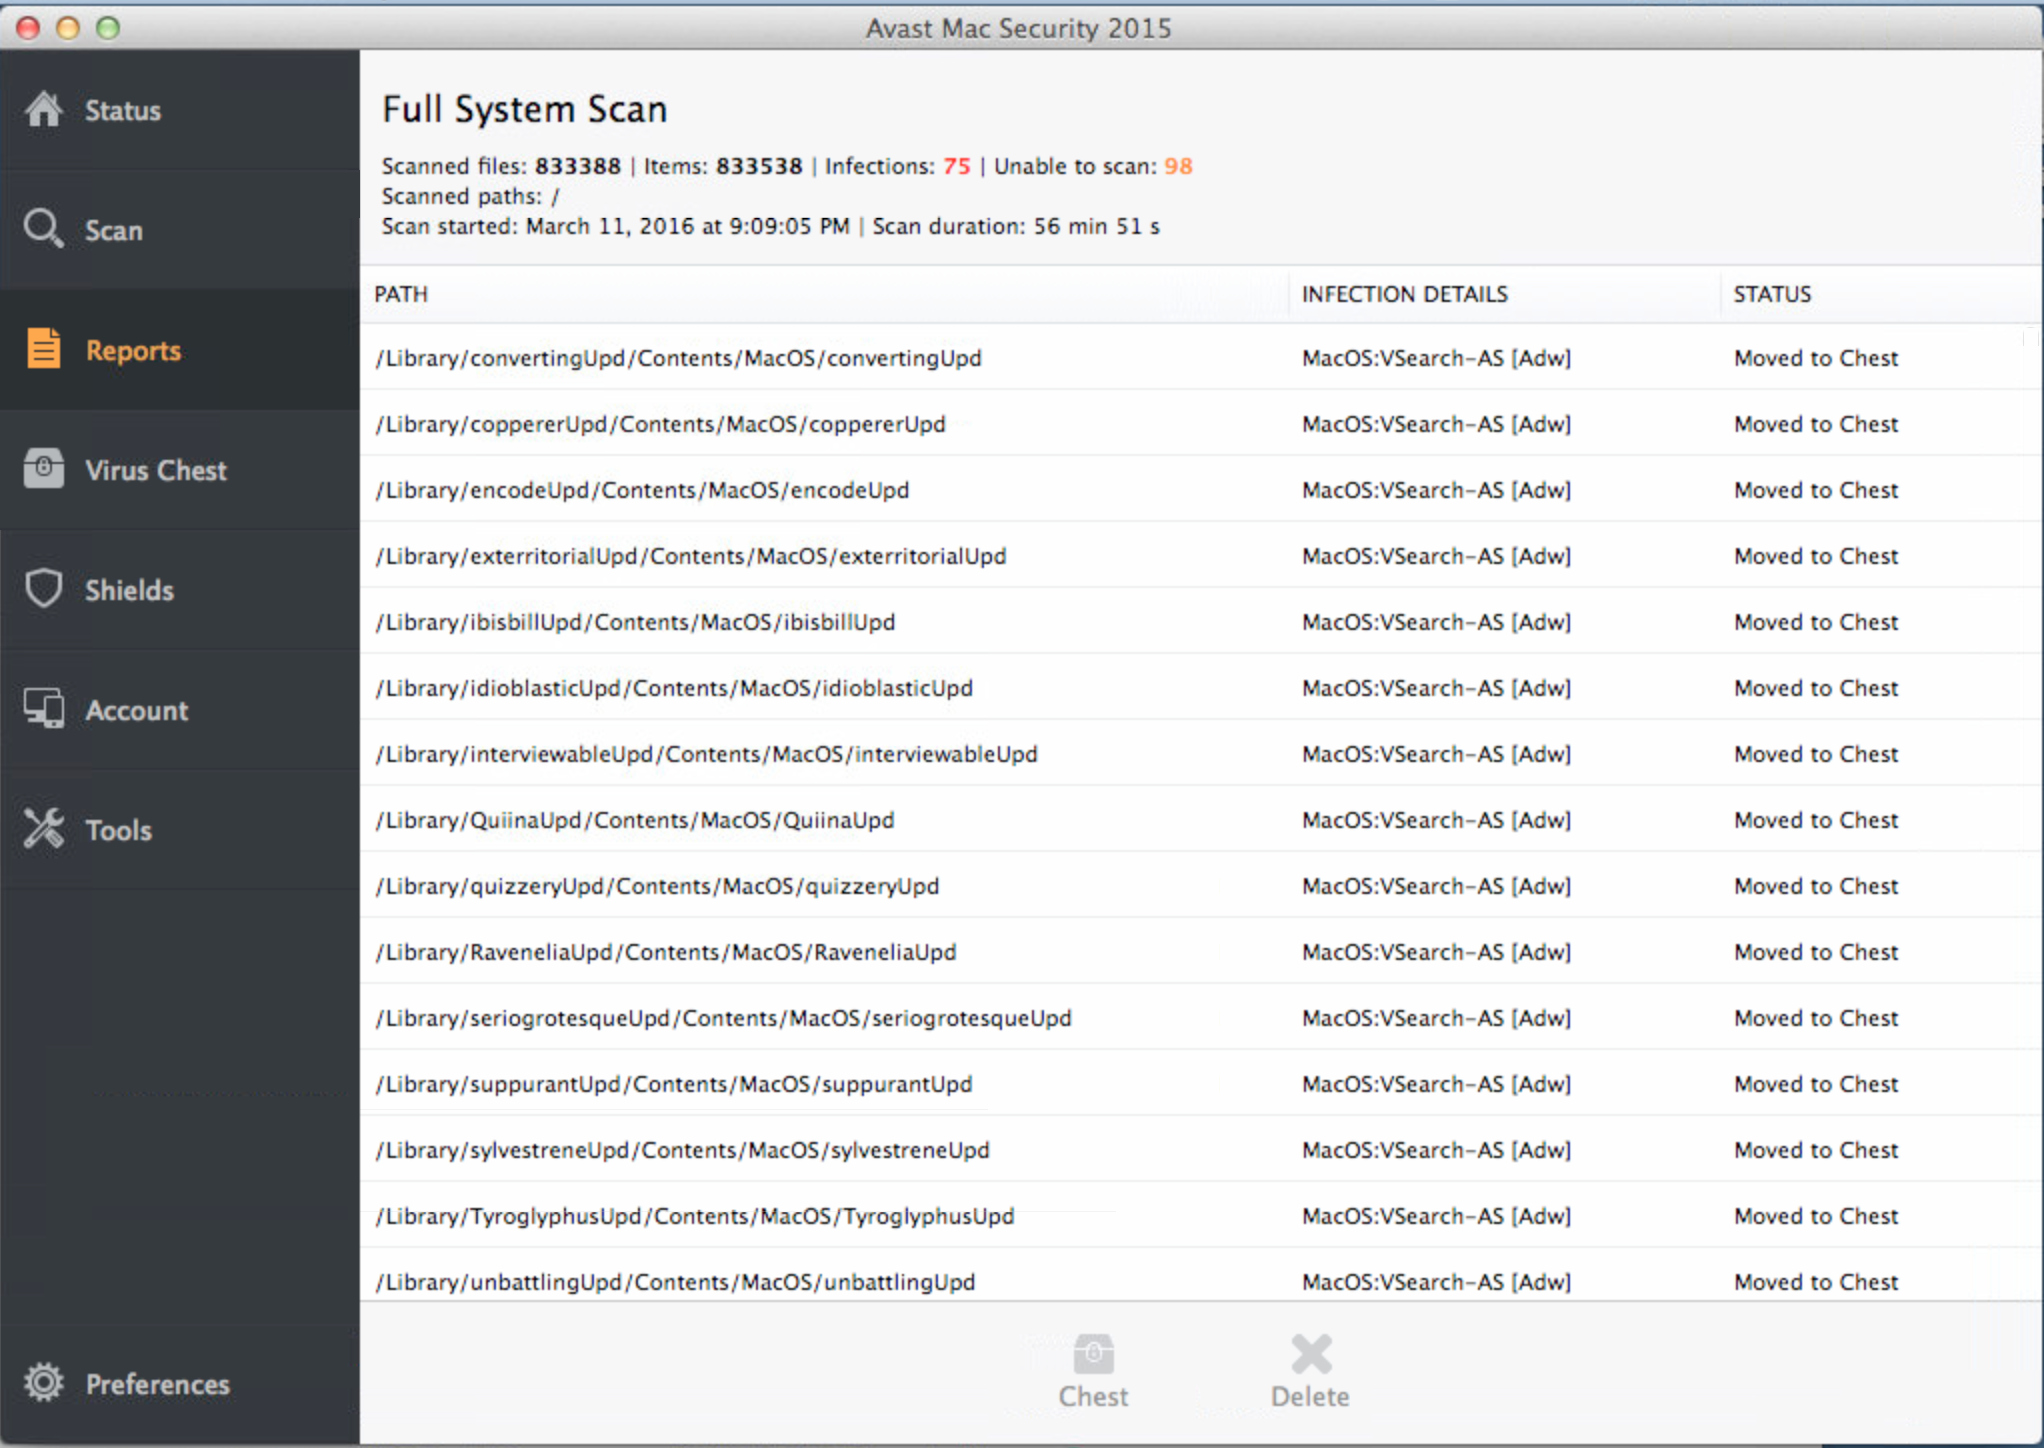 What are these Mac Malware files that Avast Anti-Virus found?